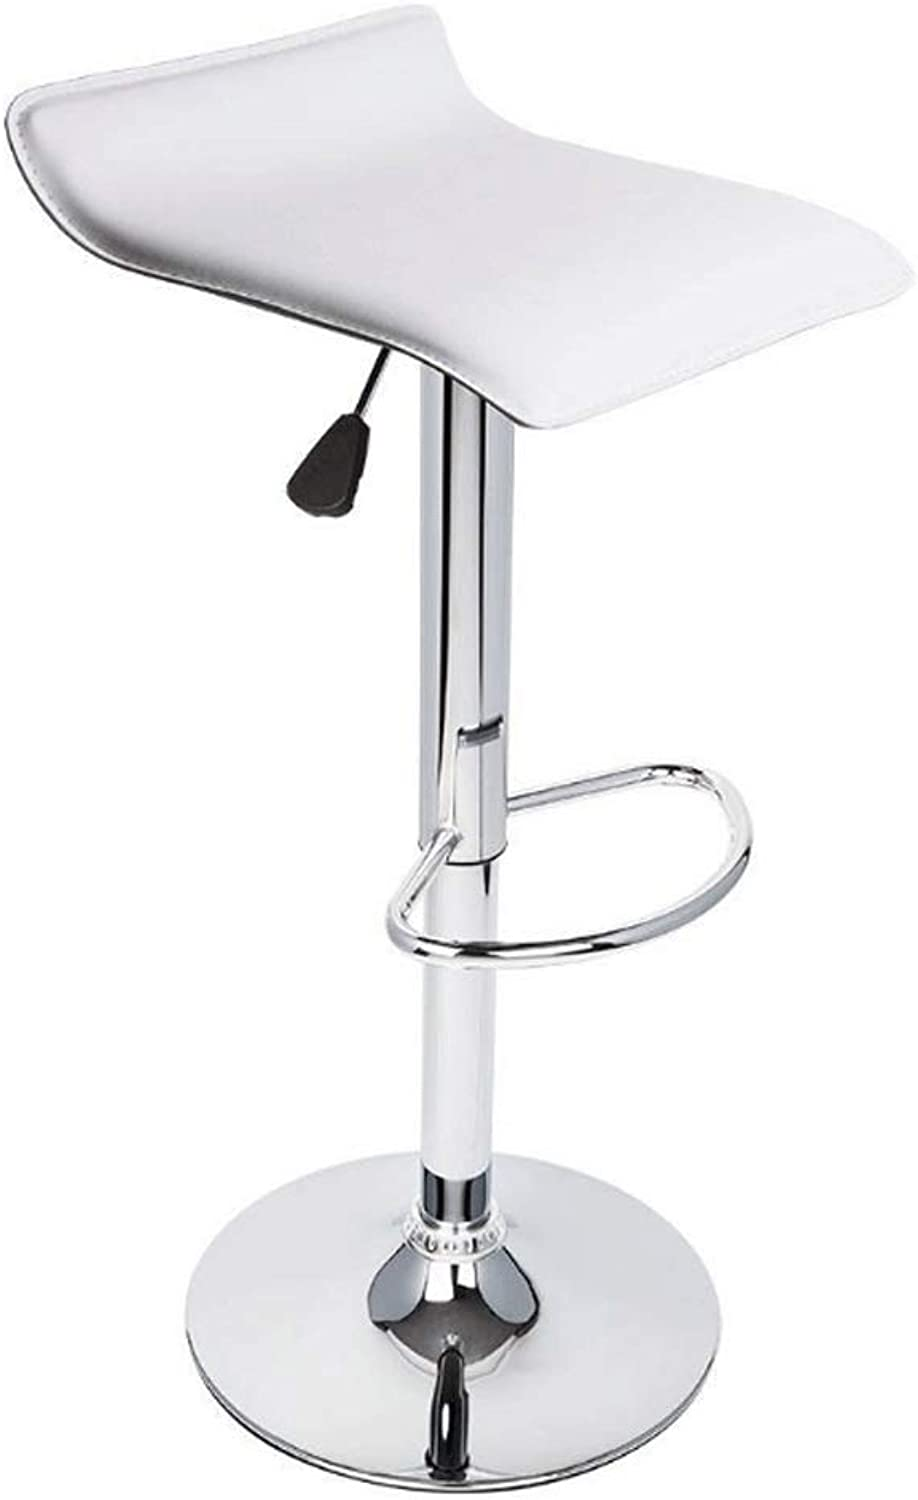 Lifting Bar Swivel Chair Lifting Adjustable Swivel Barstools, PU Leather with Chrome Base, Counter Height Hydraulic Pub Kitchen Counter Chairs (color   White)